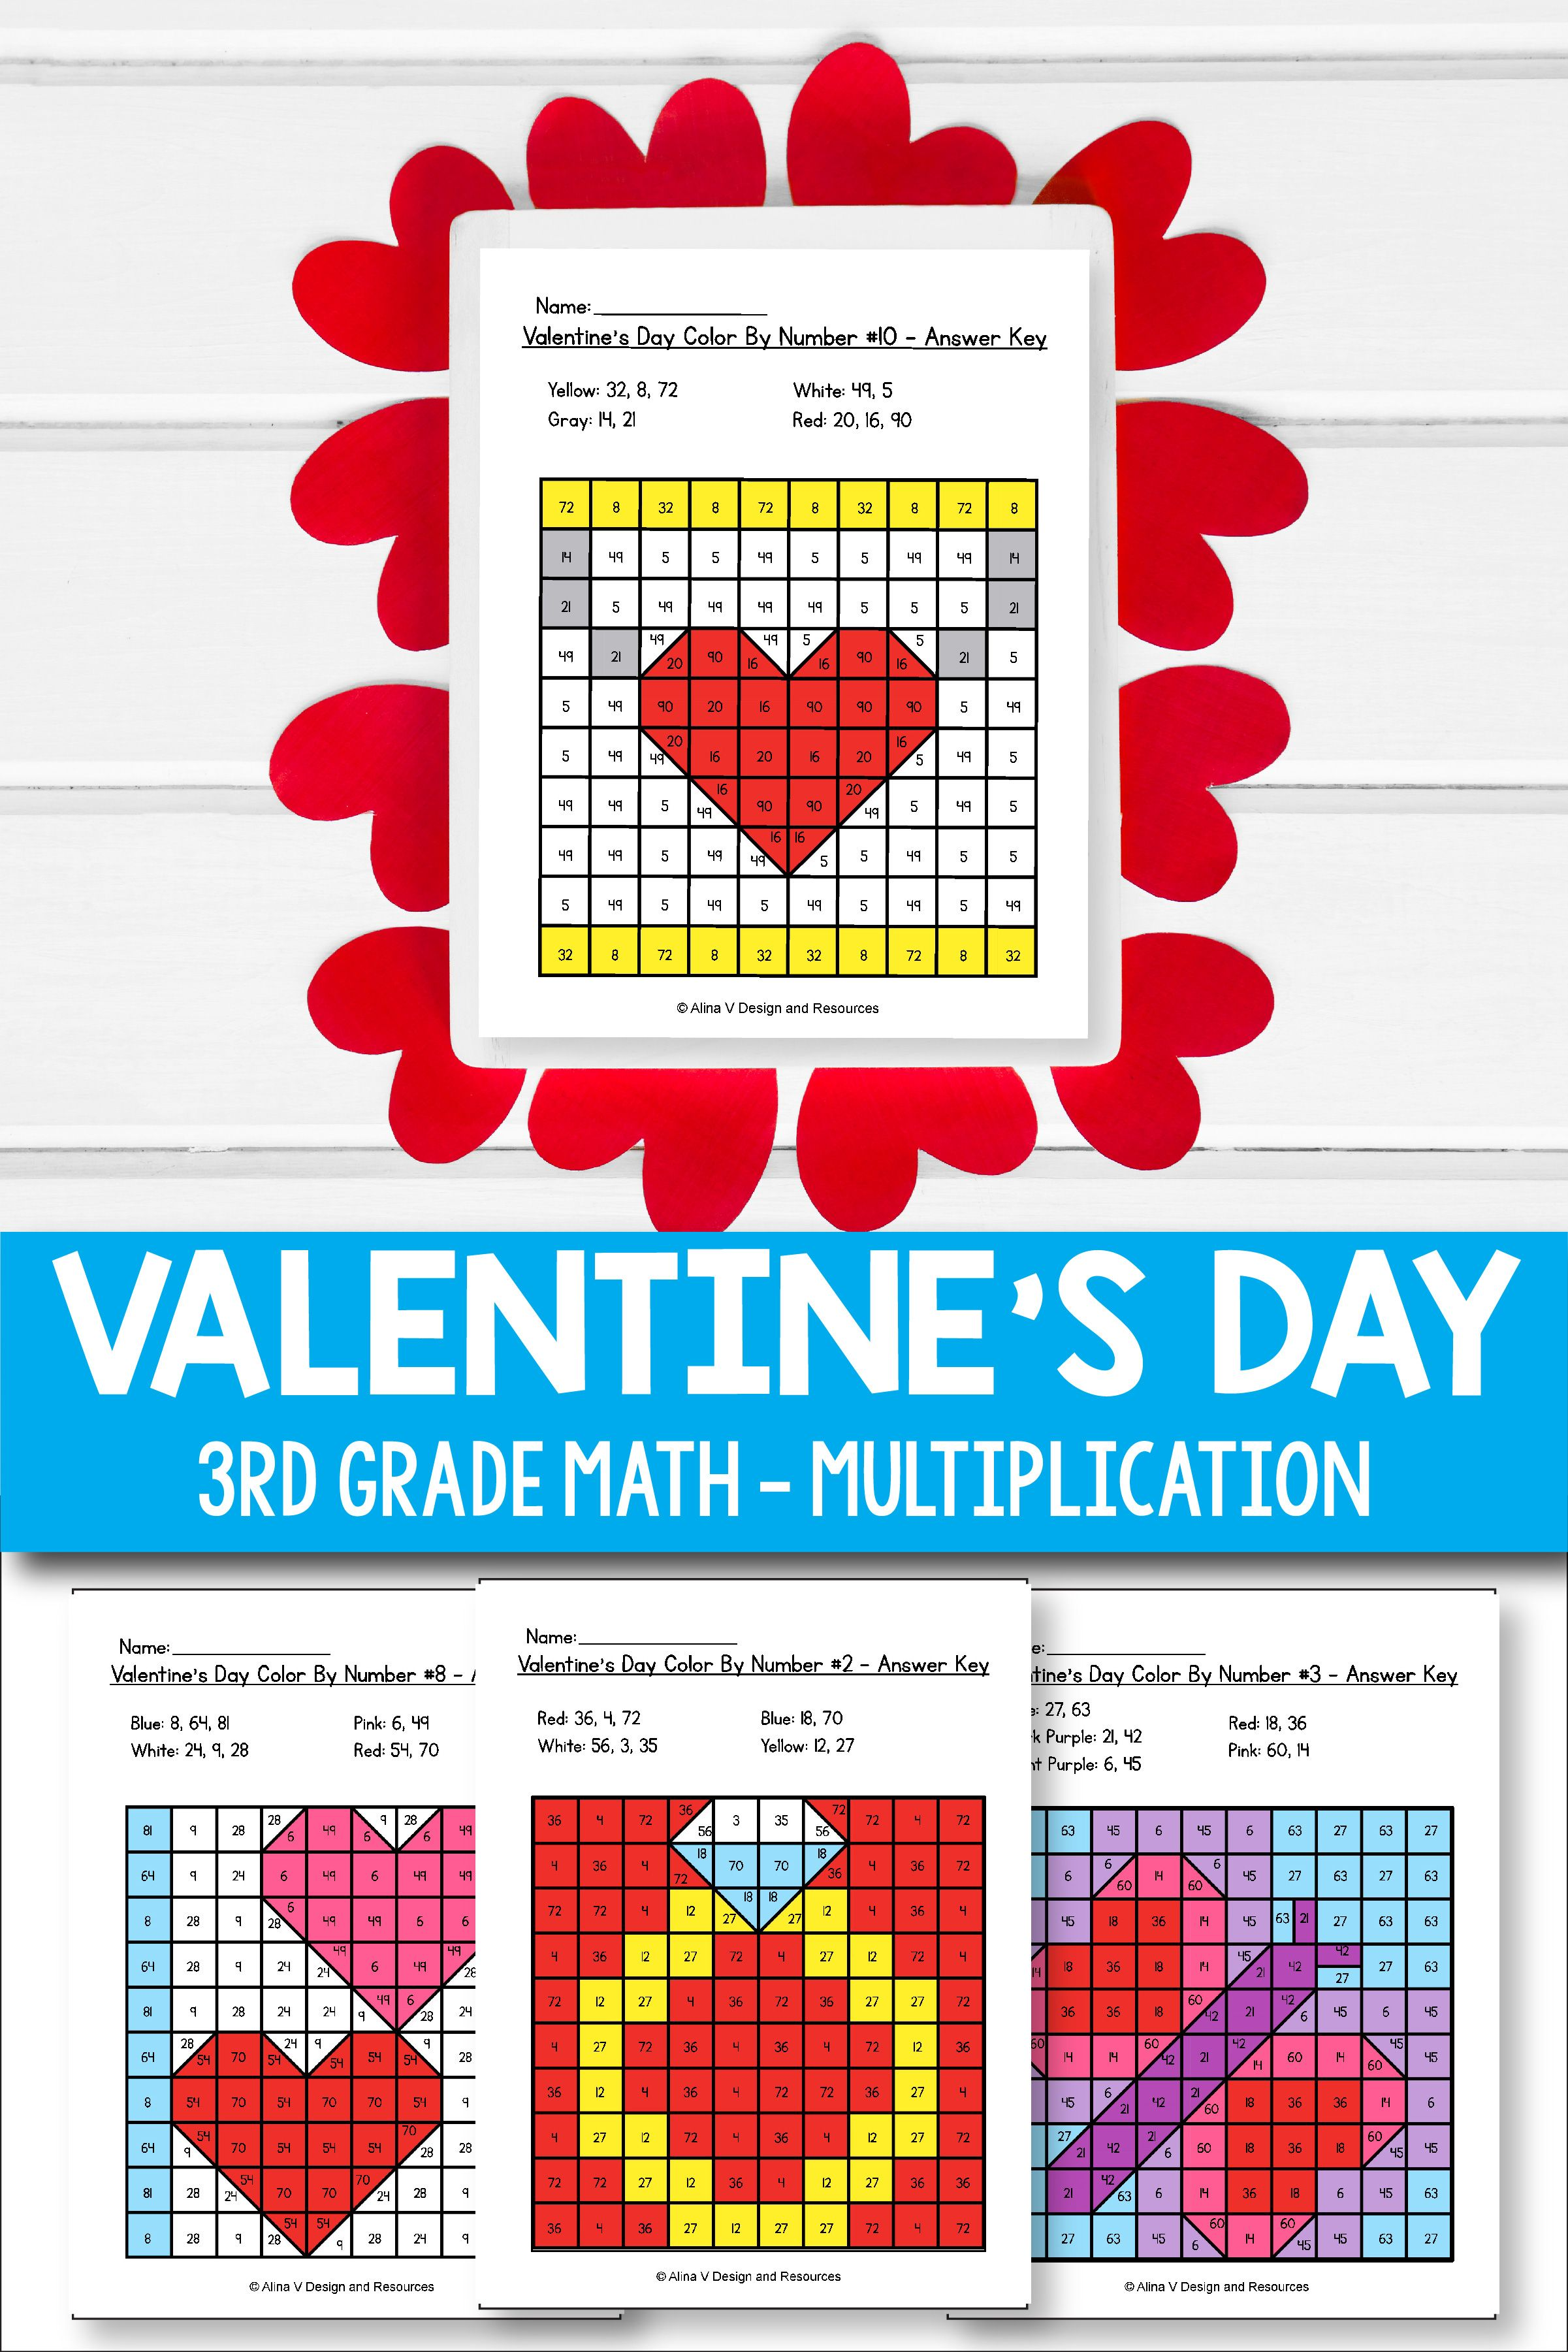 Valentine S Day Multiplication Math Worksheets For 3rd Grade Kids Is Fun With These Hundreds Chart Printabl Fun Printables Valentines Day Activities Activities